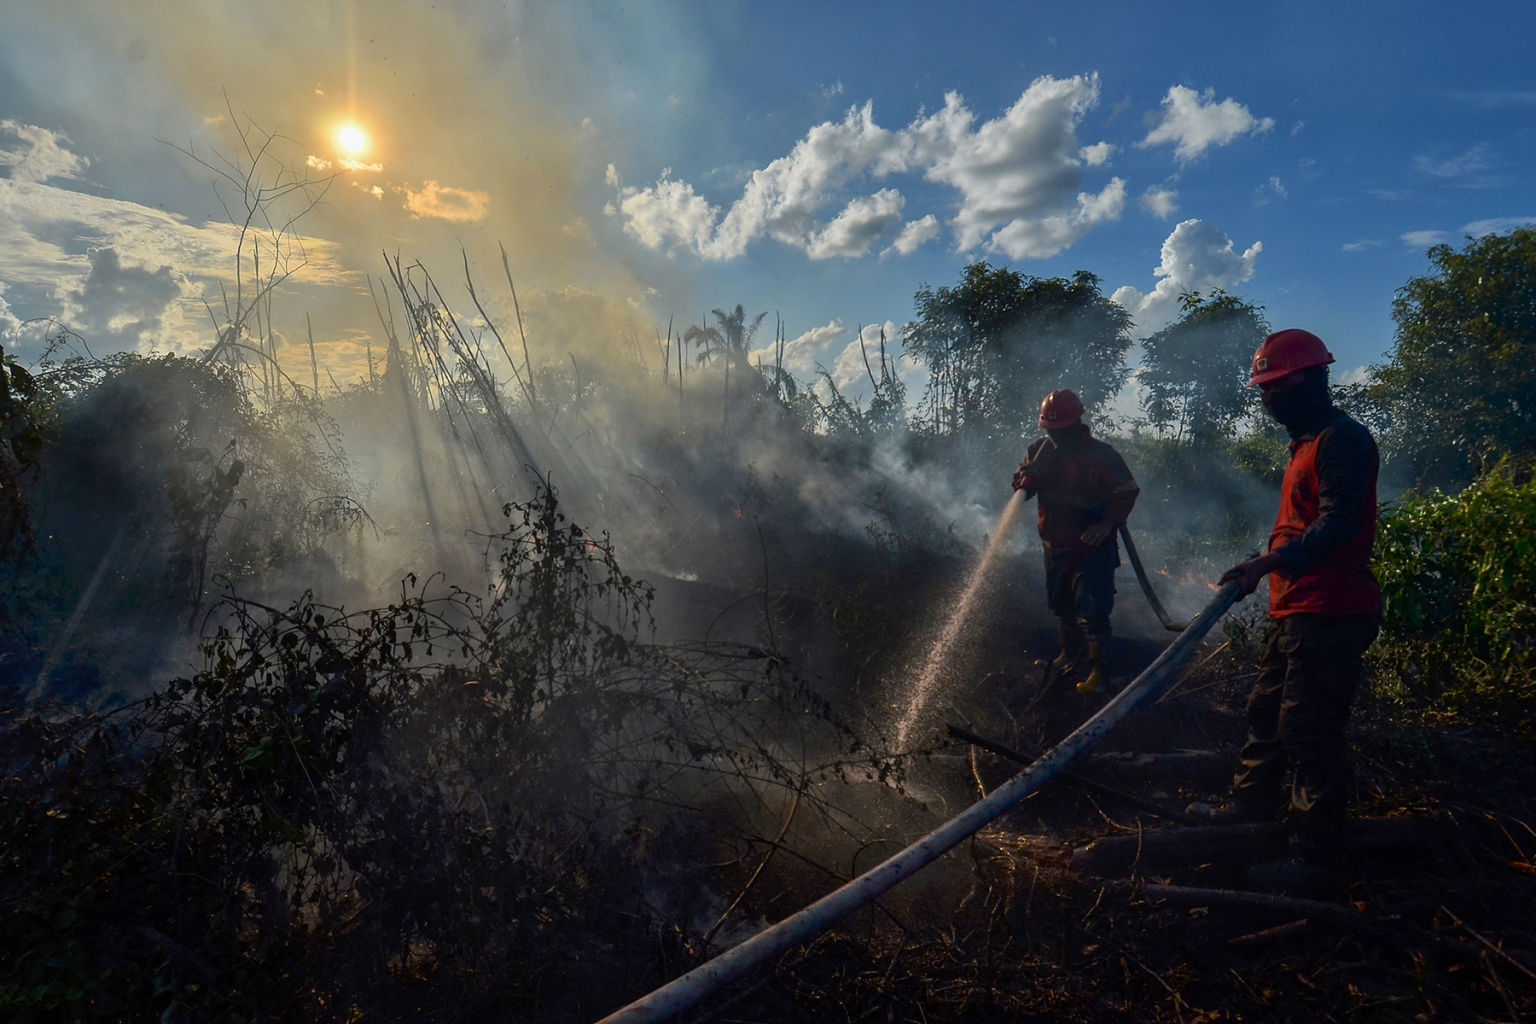 Firefighters extinguish a peatland fire at Karya Indah village in Kampar, Riau province, Indonesia, on April 3. WAHYUDI/AFP/Getty Images